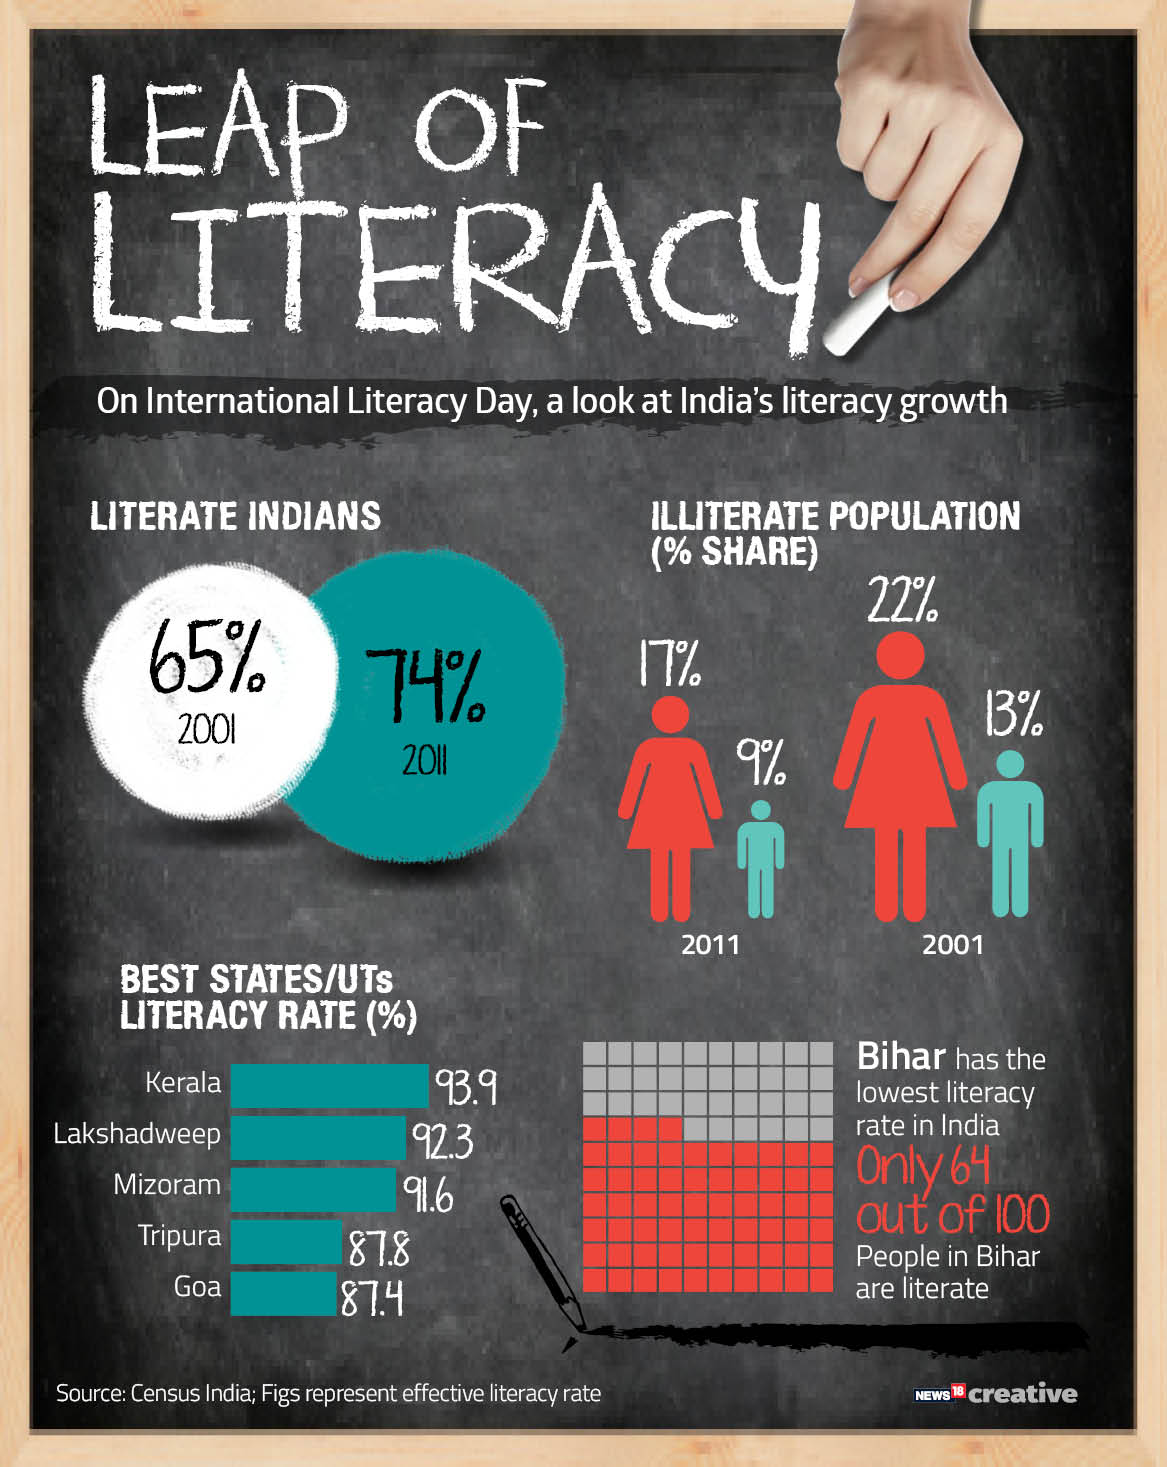 LEAP OF LITERACY